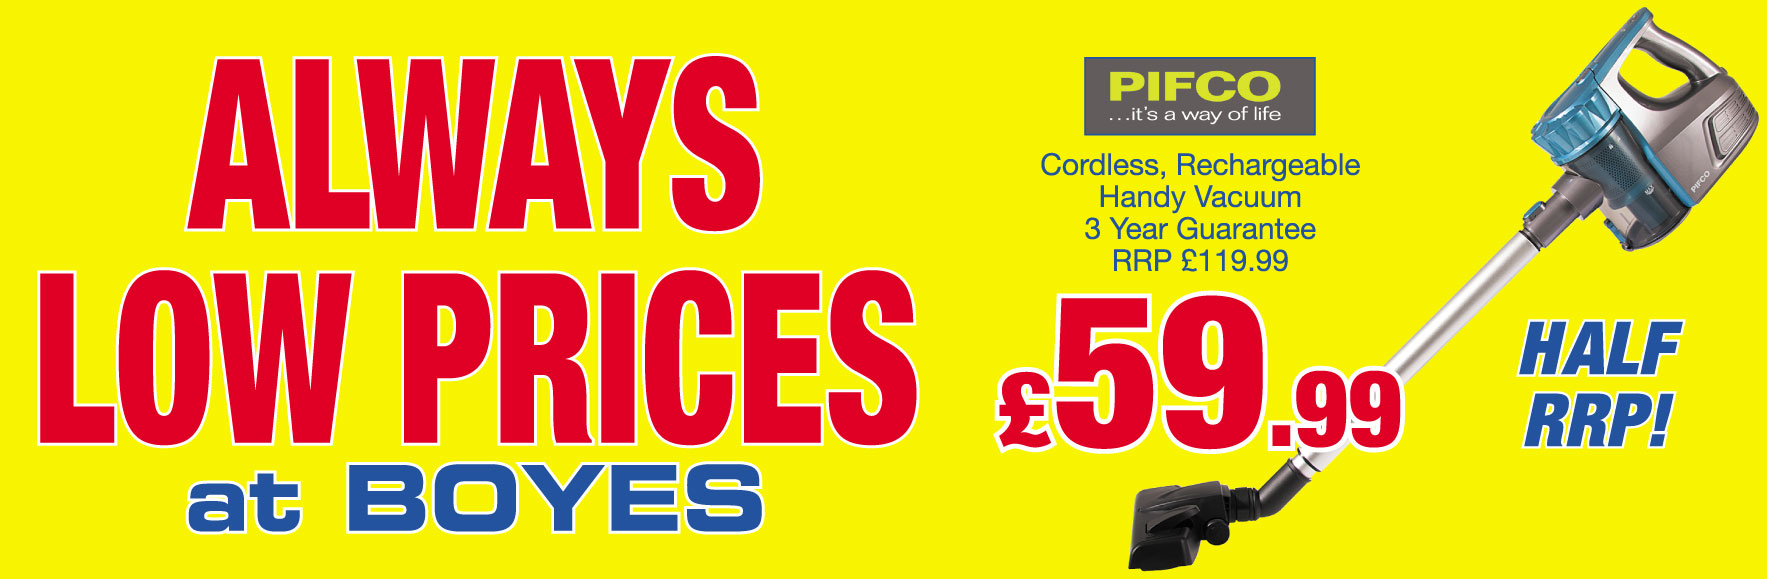 Pifco Cordless Rechargeable Vacuum HALF RRP Only £59.99